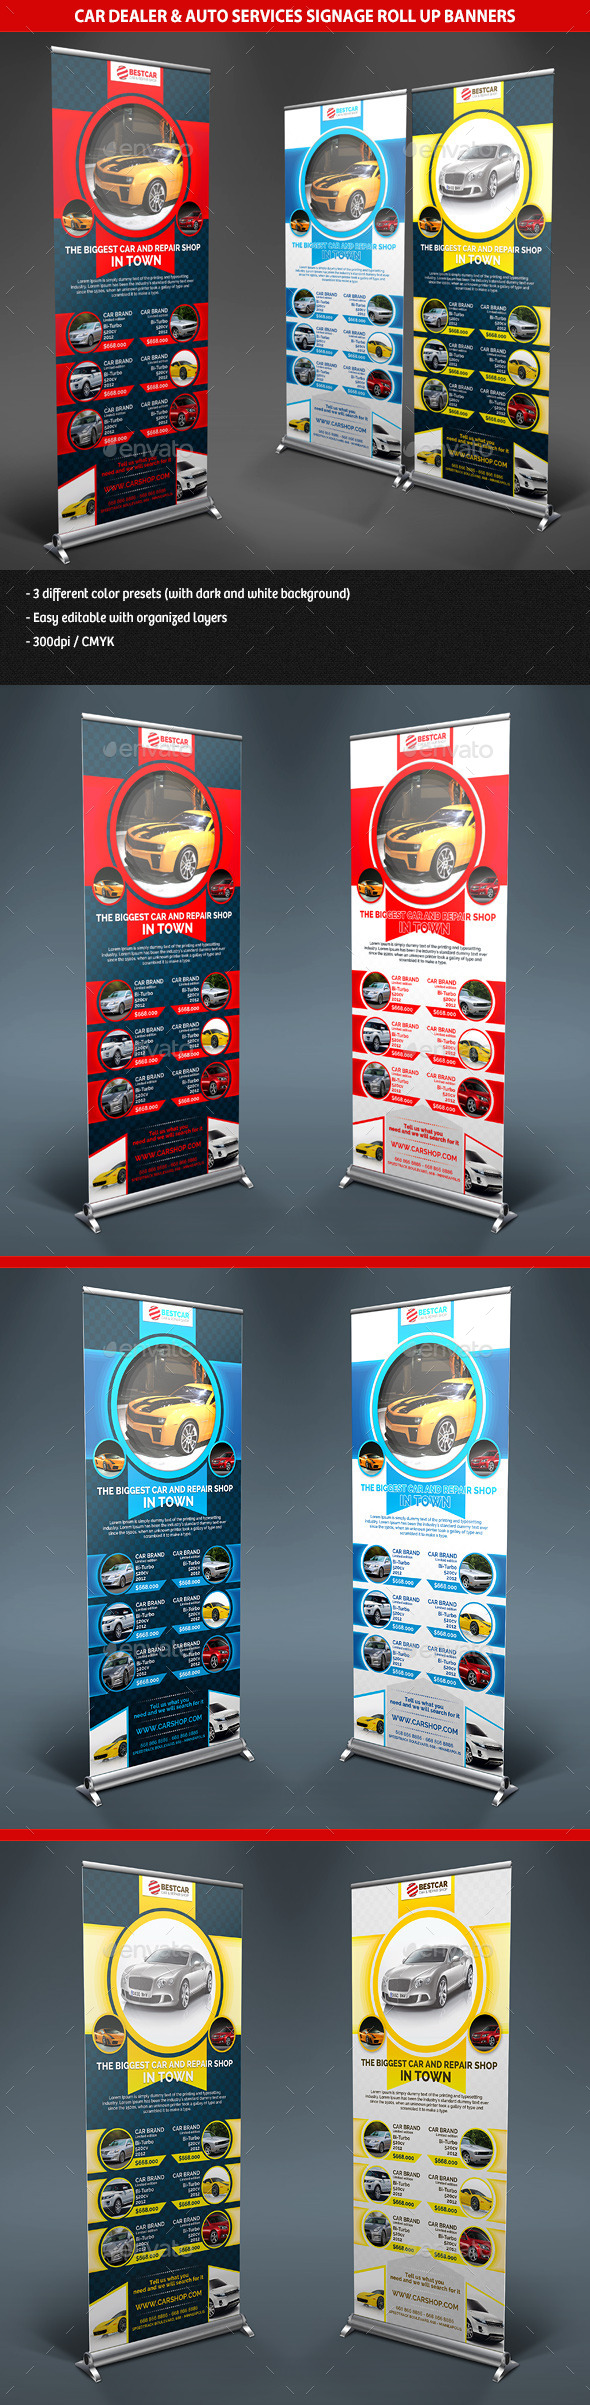 GraphicRiver Car Dealer & Auto Services Signage Roll Up Banners 10051786